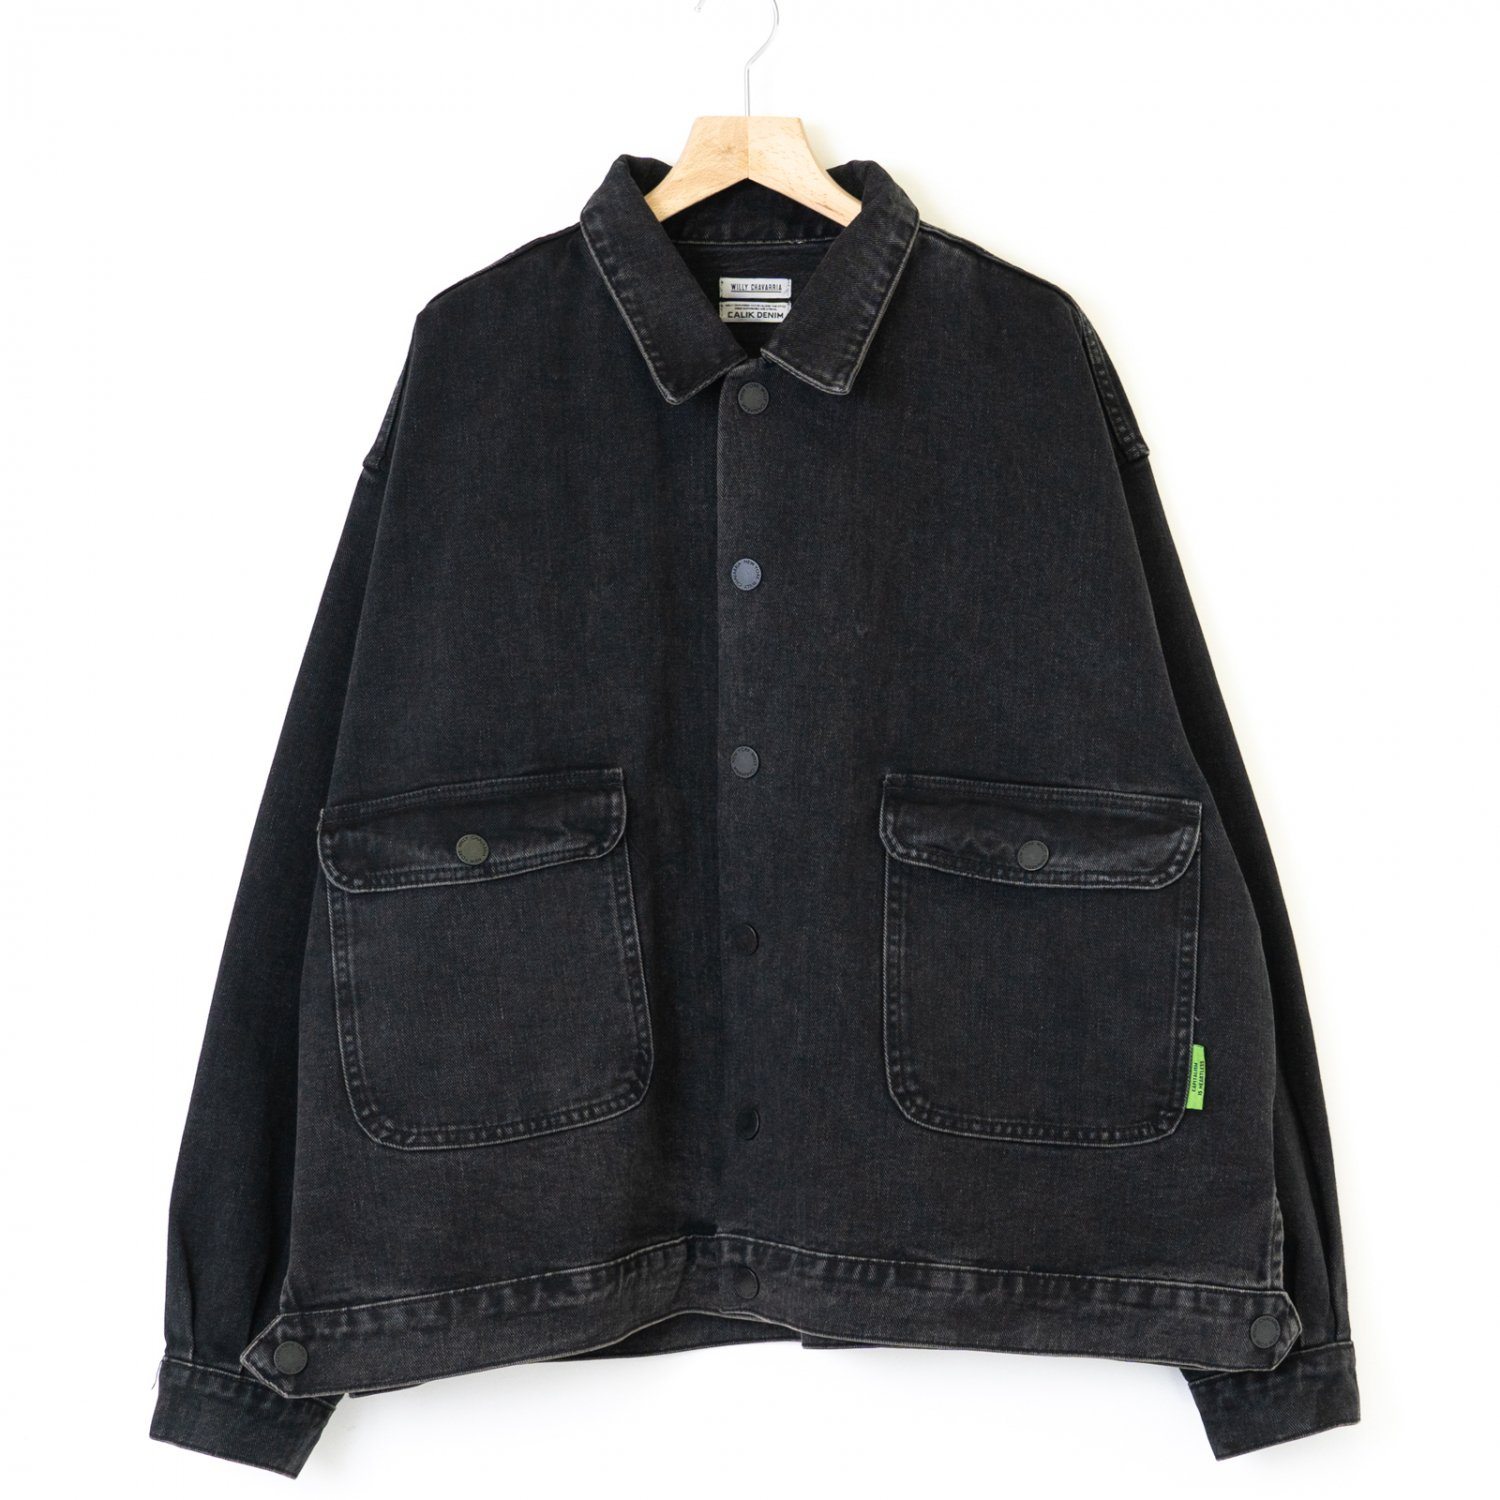 WILLY CHAVARRIA * SILVERLAKE JACKET * Washed Denim Black